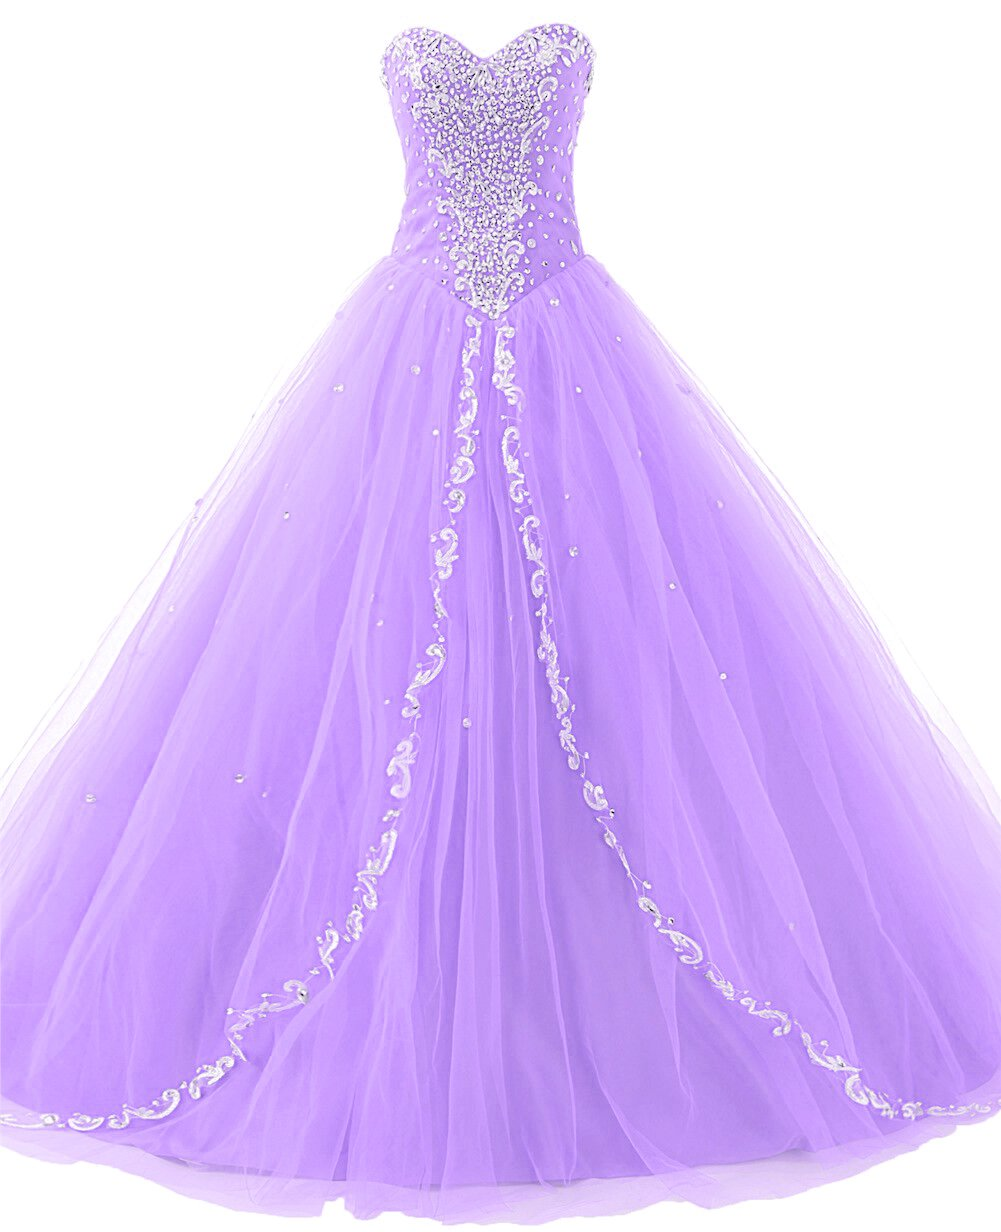 JAEDEN Wedding Sweetheart Long Quinceanera Dresses Formal Prom Dresses Ball Gown Lilac US18W